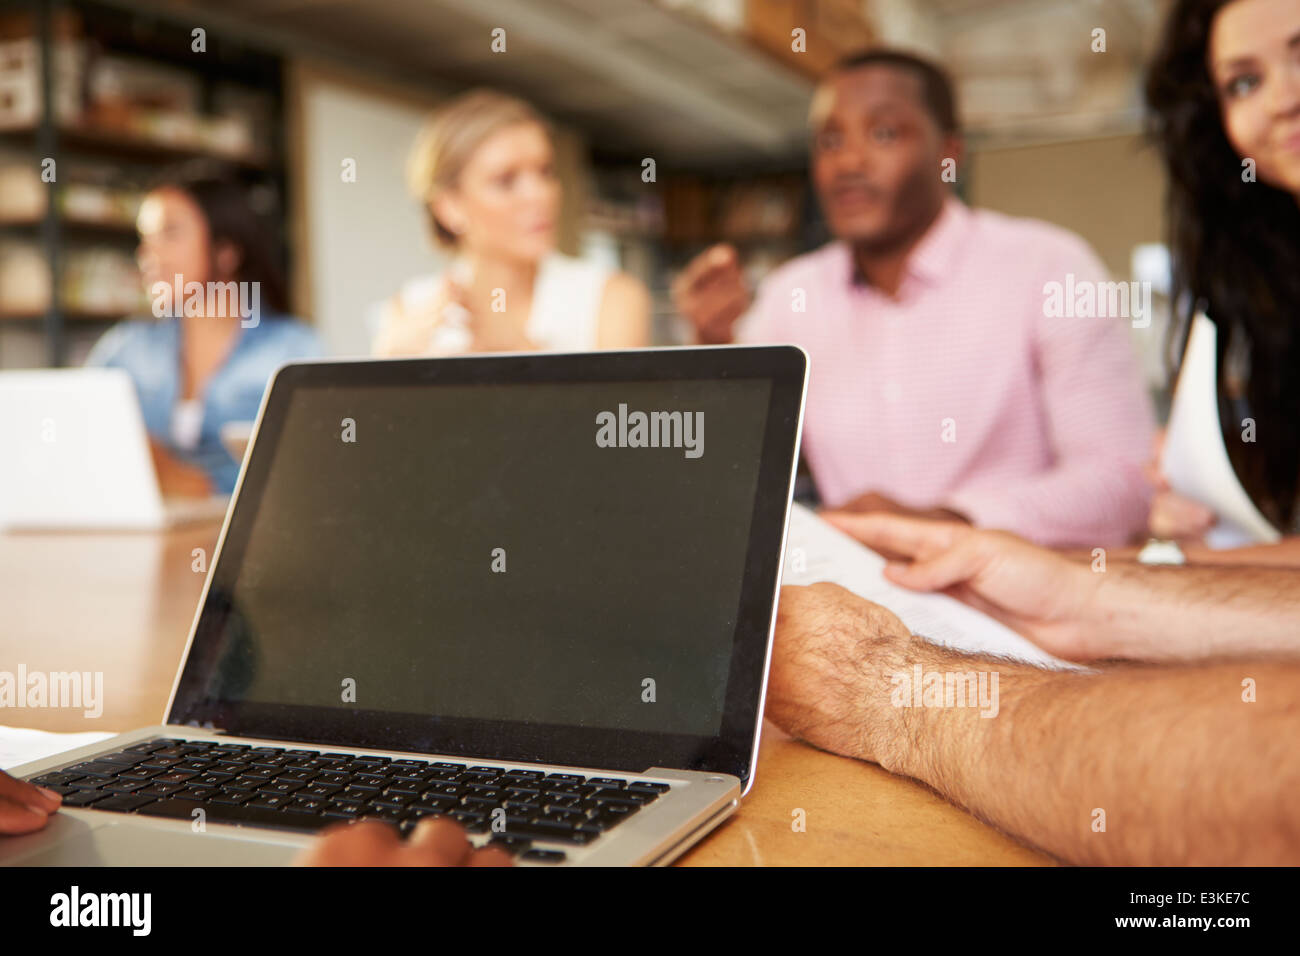 Close Up Of Laptop Being Used By Architect In Meeting - Stock Image